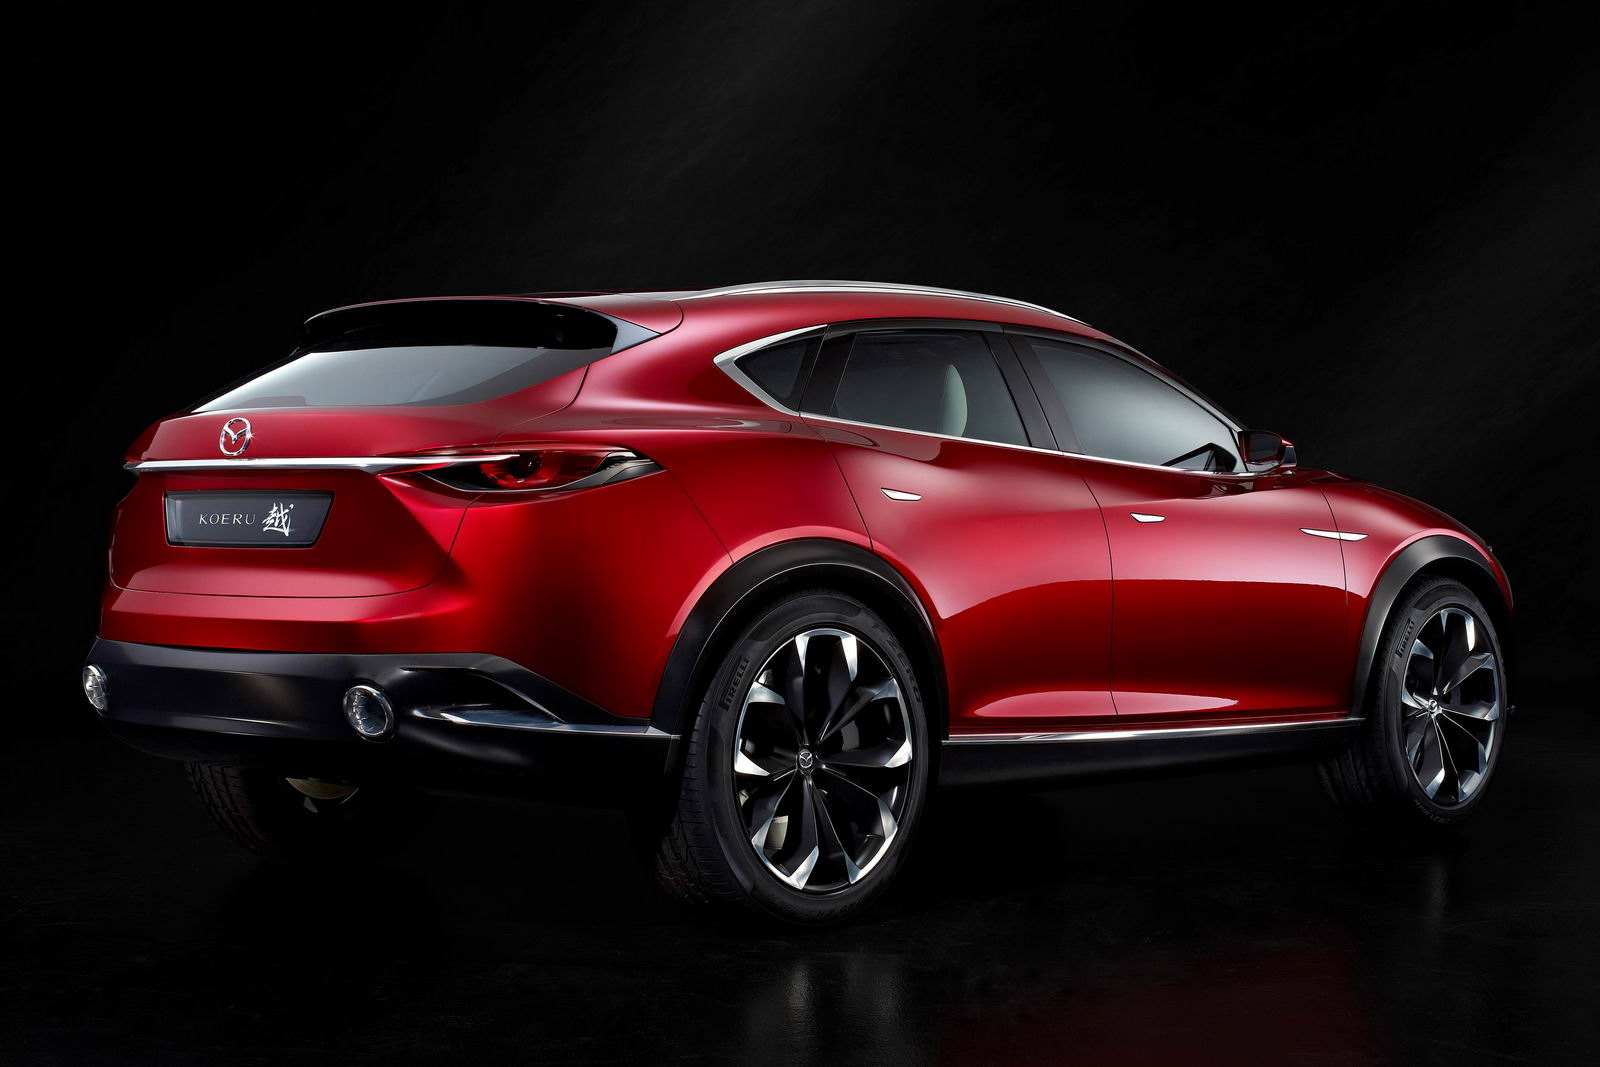 mazda koeru concept previews upcoming cx 7 suv carscoops. Black Bedroom Furniture Sets. Home Design Ideas